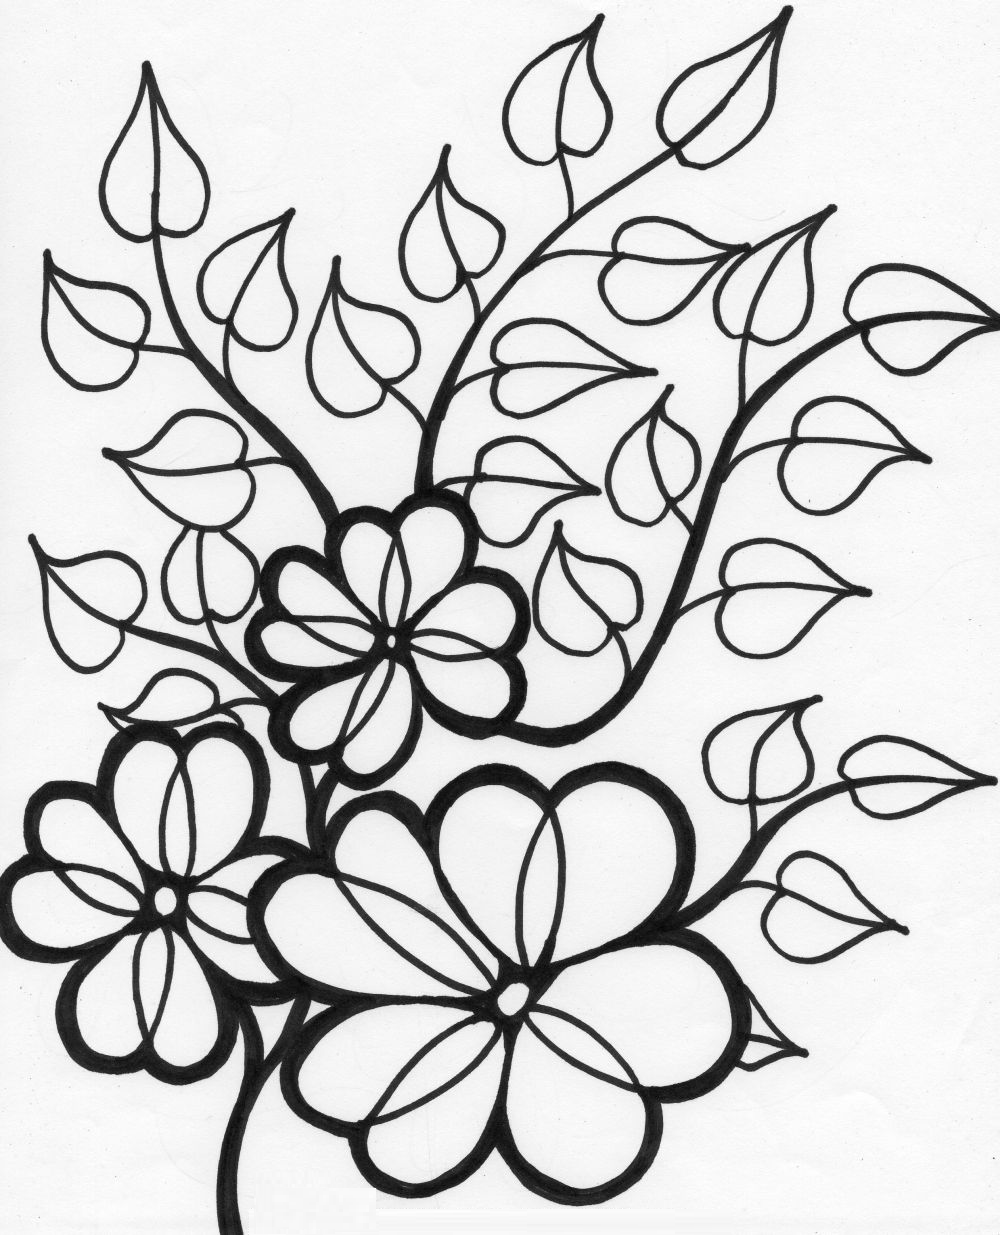 flowers coloring pages printable summer flowers printable coloring pages free large images pages printable coloring flowers